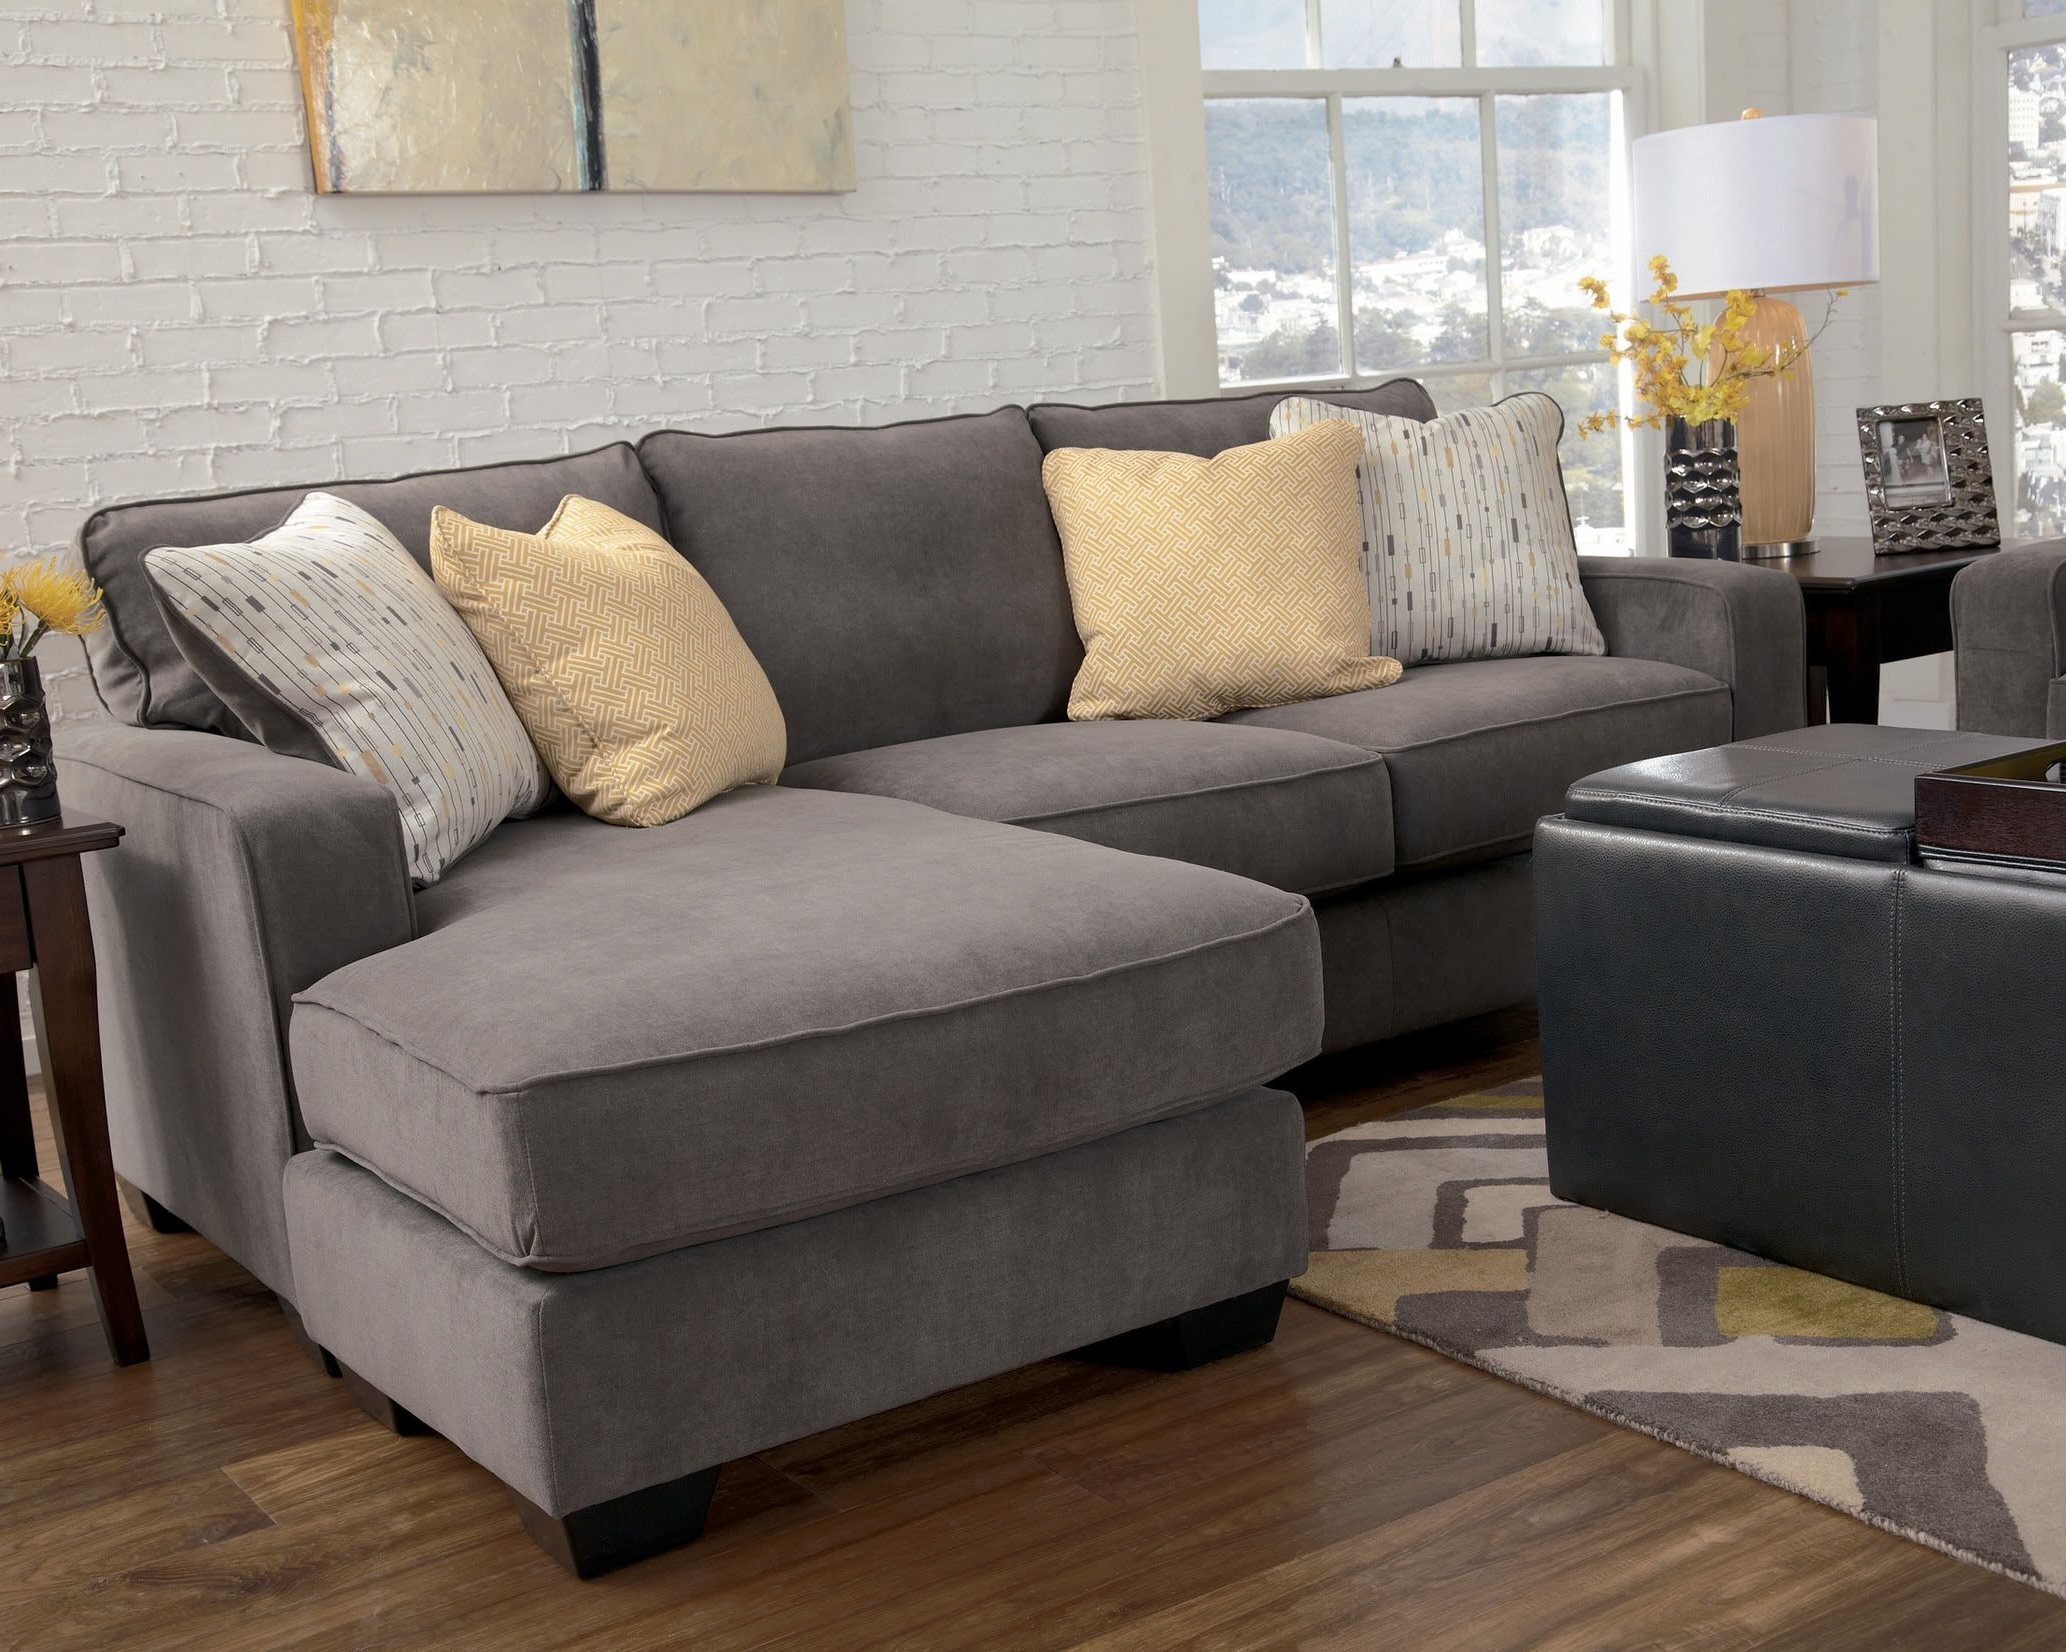 Best And Newest Grey Chaise Sofas Intended For Marble Contemporary Sofa Chaise Living Room Furniture Fabric (View 5 of 15)